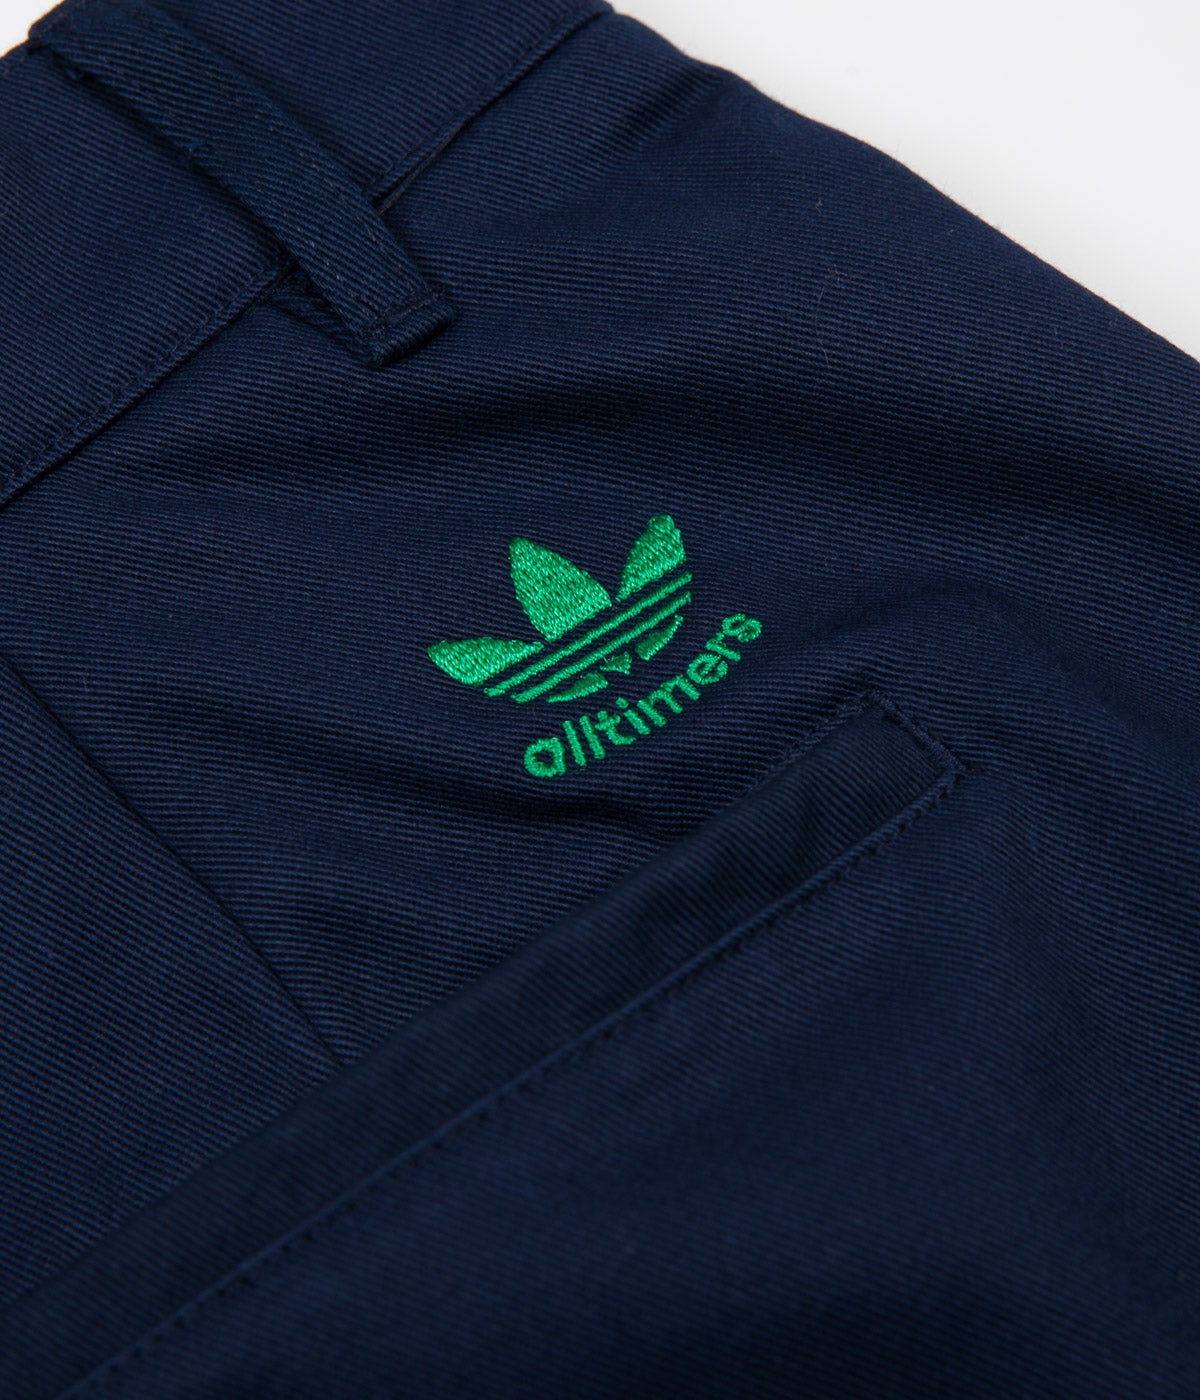 4abca190cbc4 ... Adidas x Alltimers Chino Trousers - Collegiate Navy ...